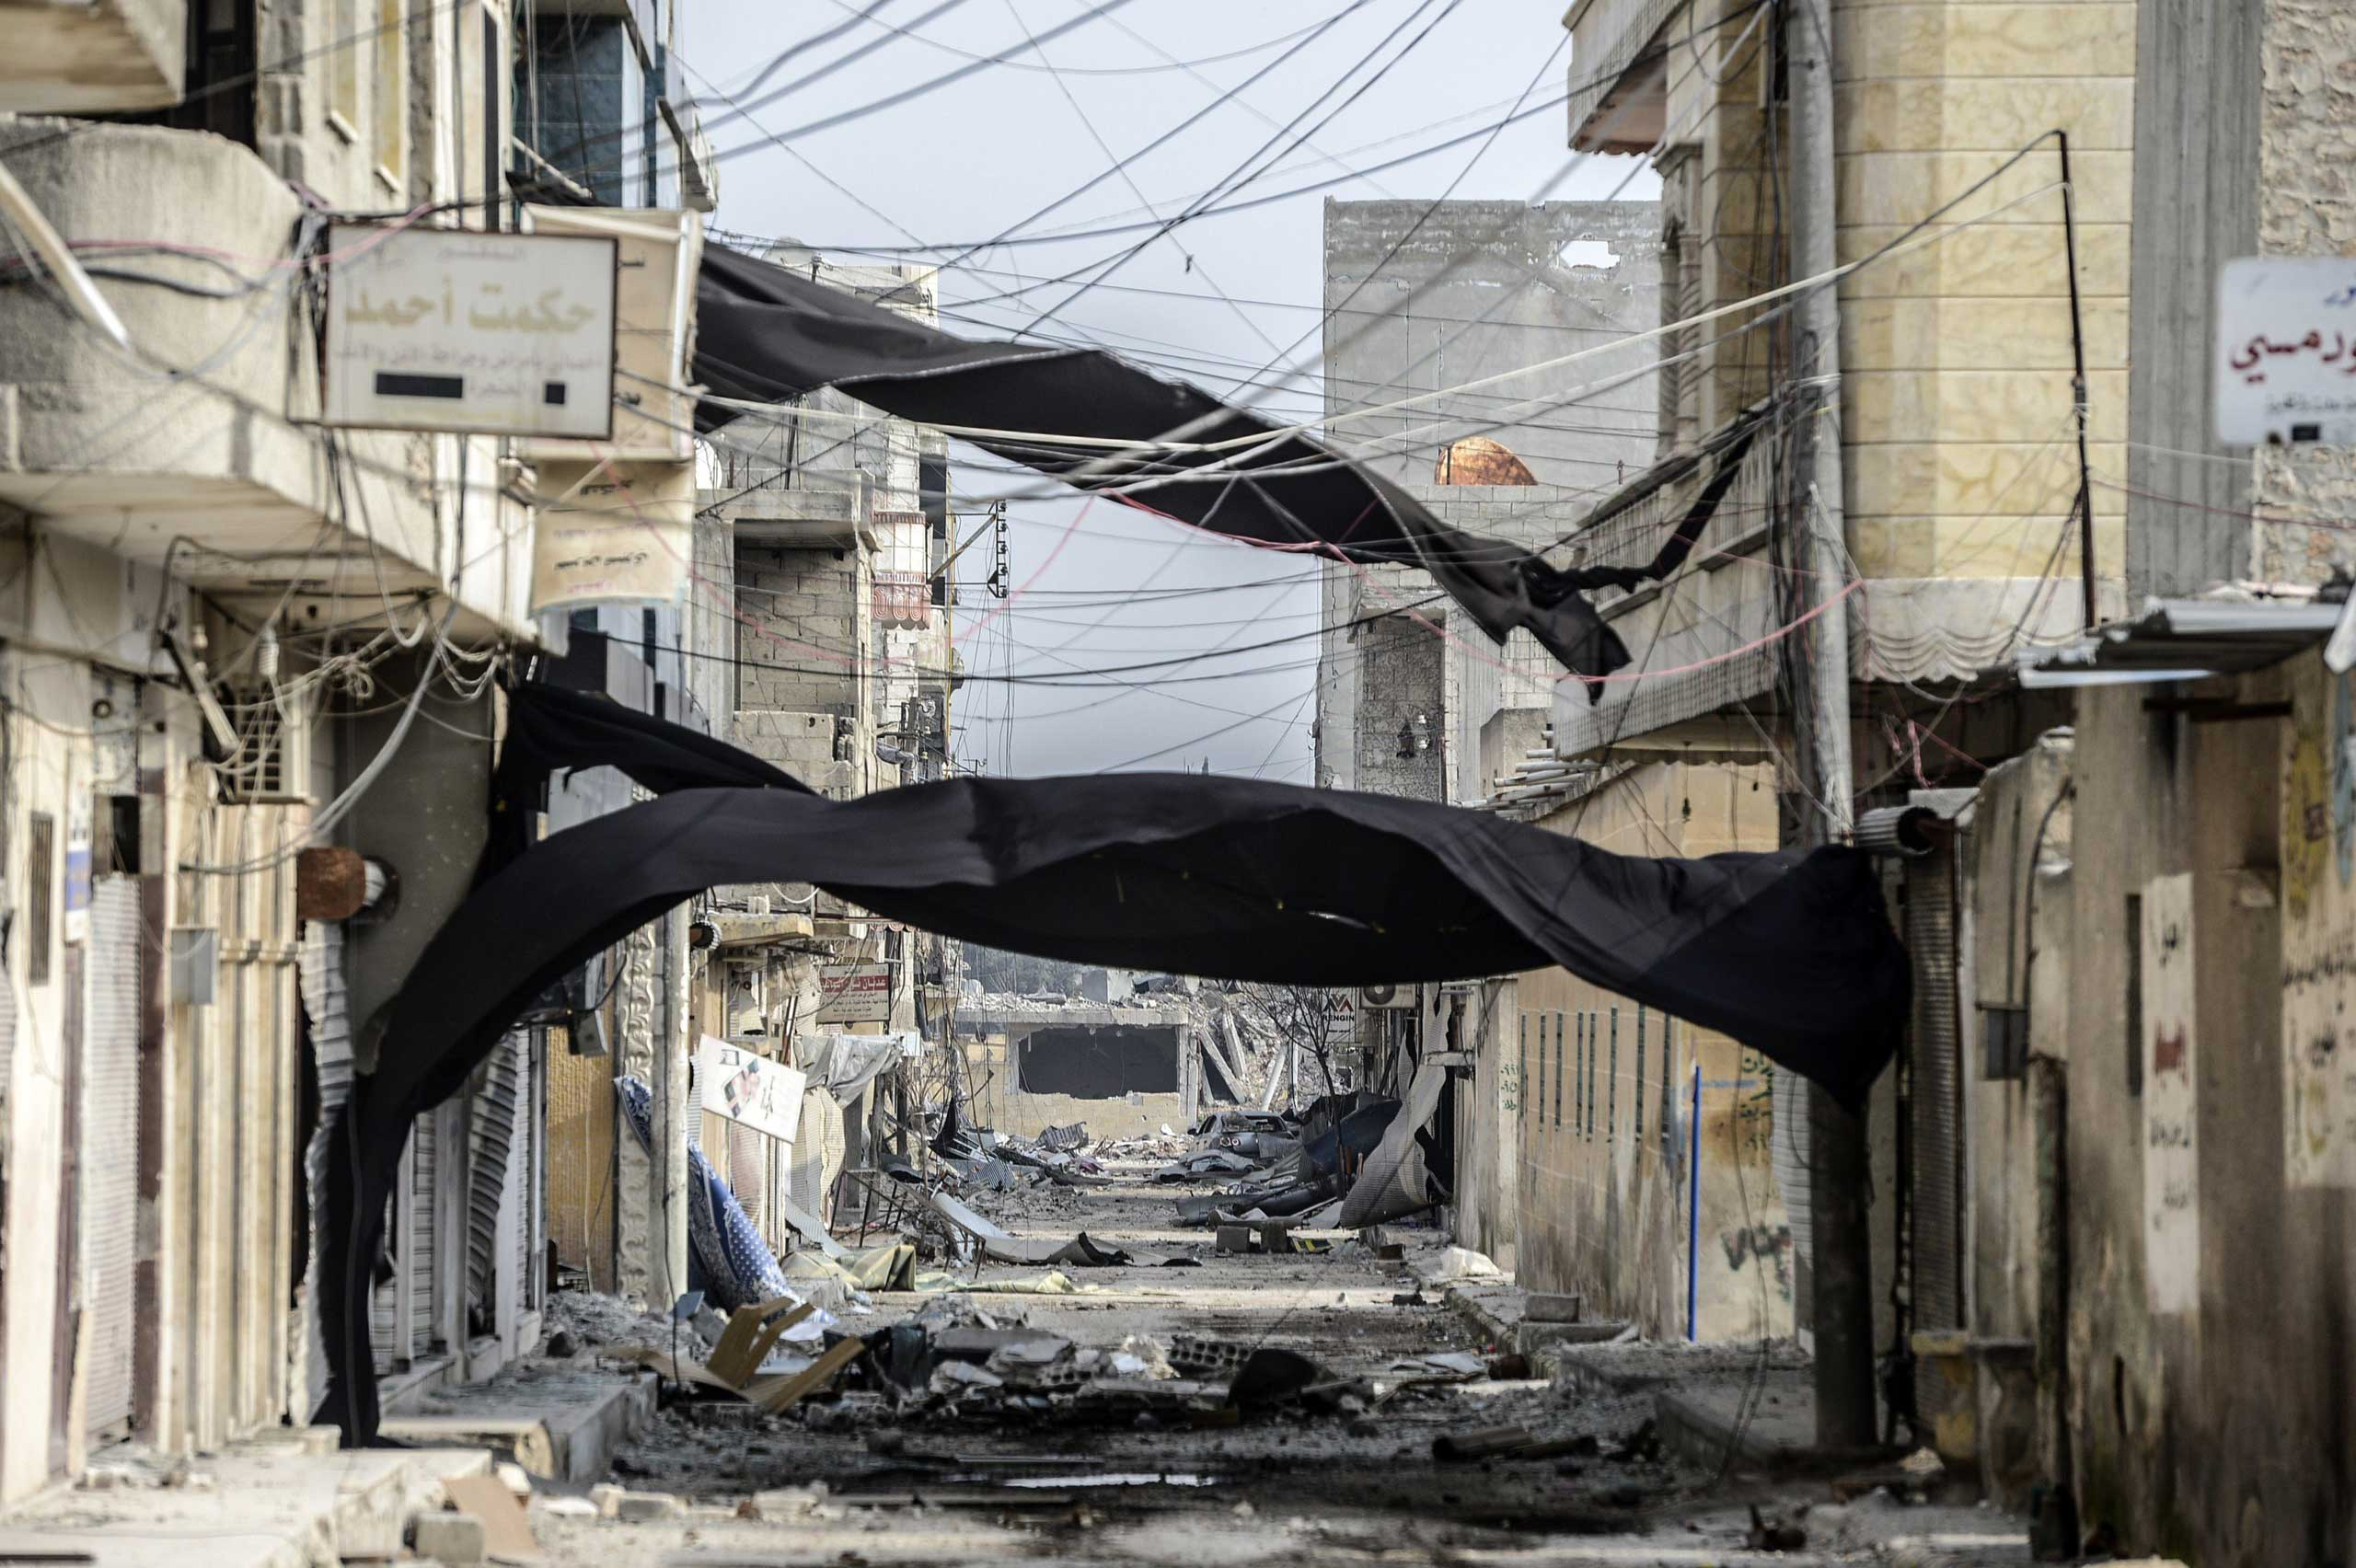 Jan. 28, 2015. The wreckage left by fighting in the center of the Syrian town of Kobani. Kurdish forces recaptured the strategic town on the Turkish frontier in a symbolic blow for the jihadists who have seized swathes of territory in a brutal onslaught across Syria and Iraq.